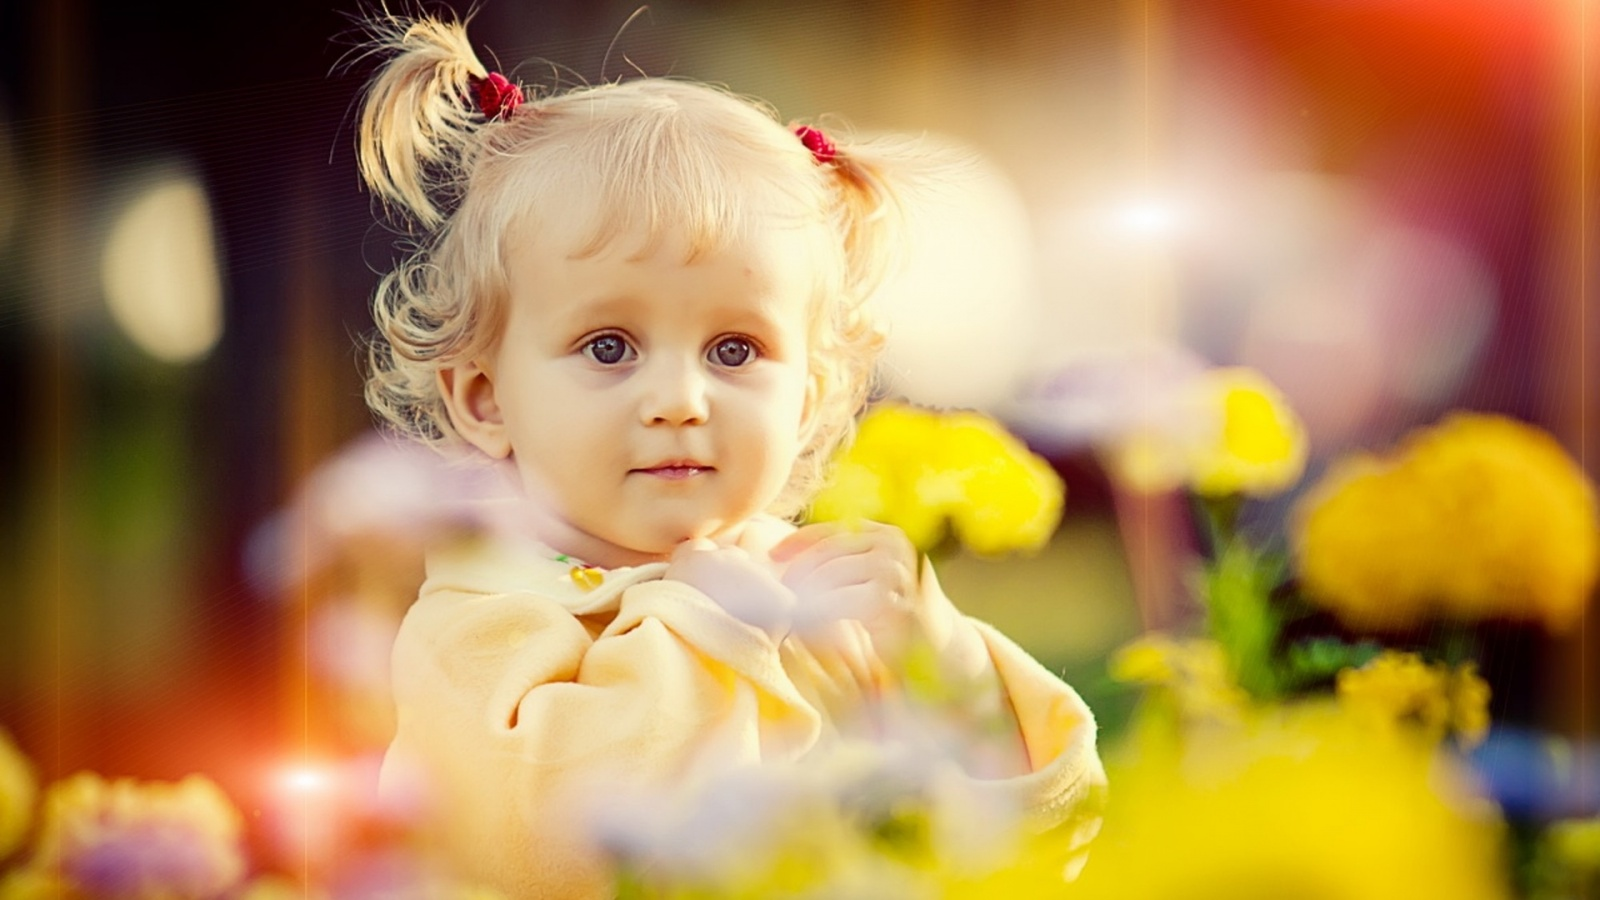 Baby Girl Beautiful Hair Style Wallpapers  1600x900 284888